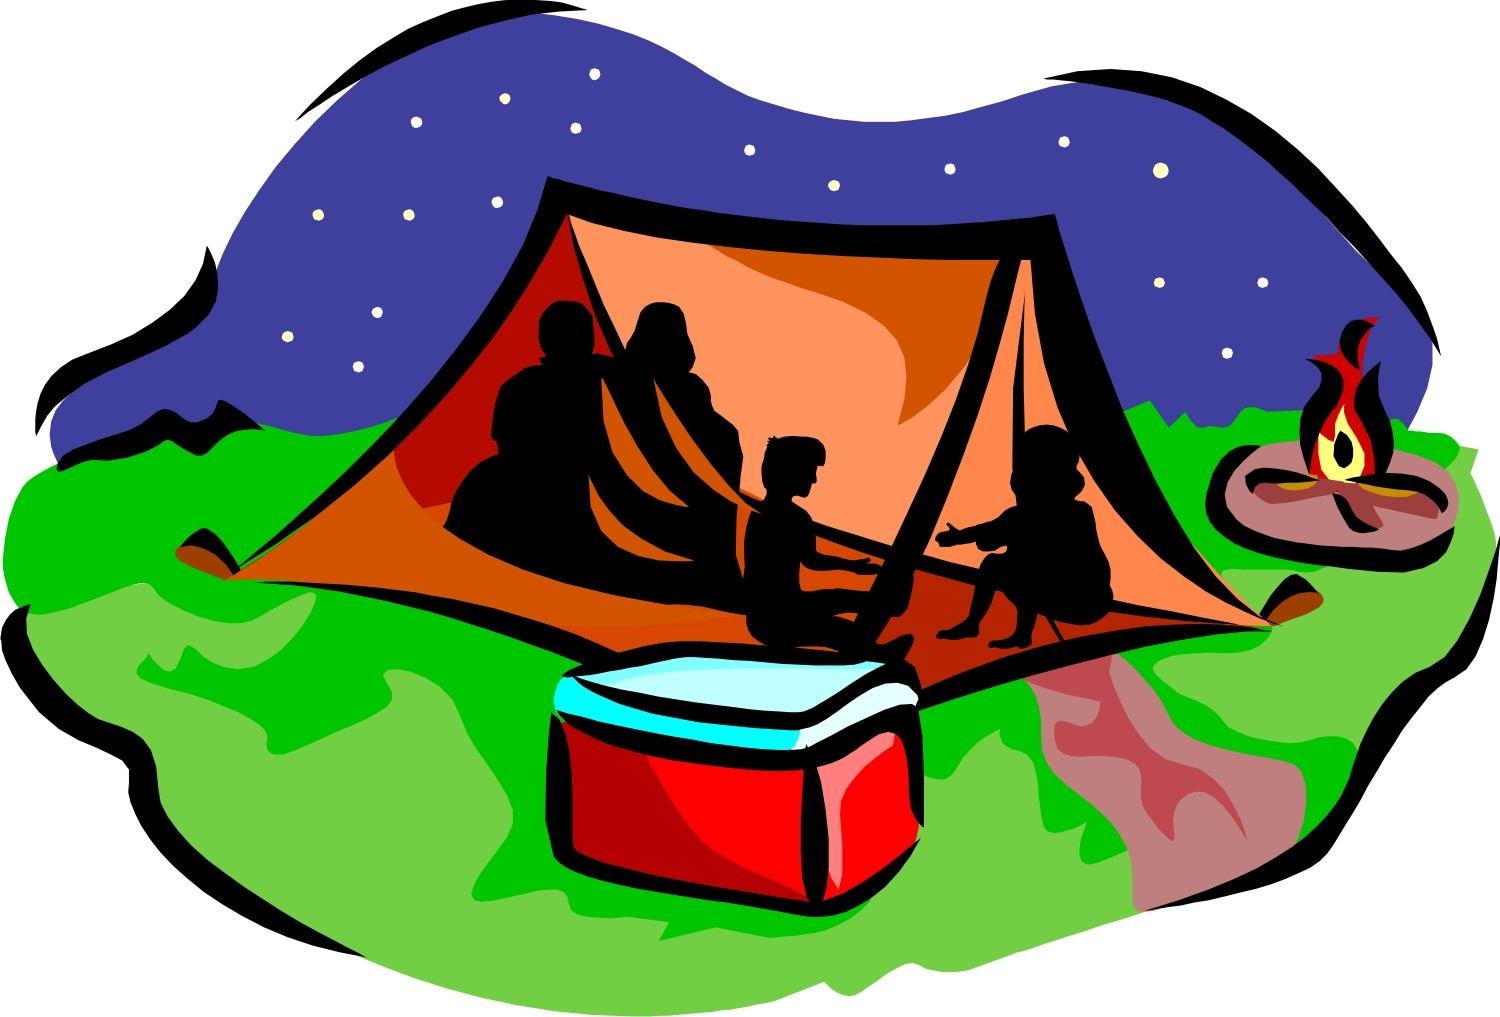 3163 Camping free clipart.